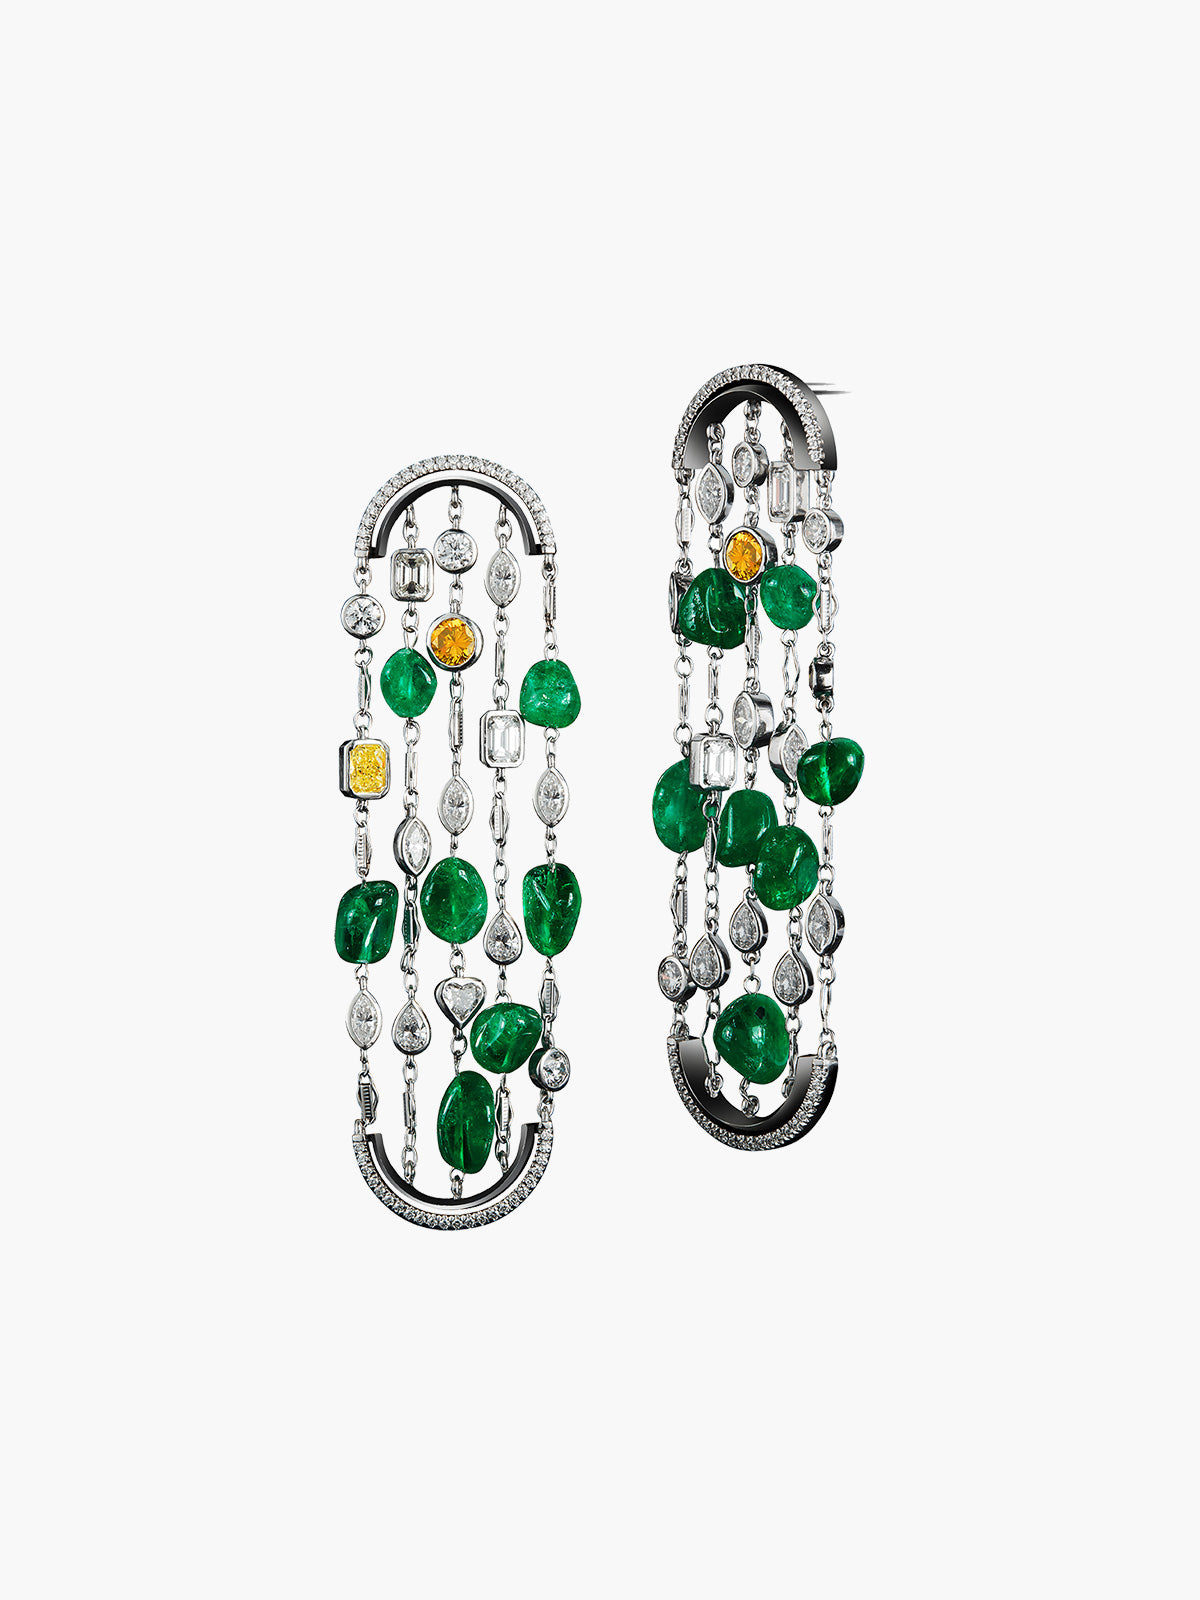 Arched Sautoir Tumble Bead Earrings